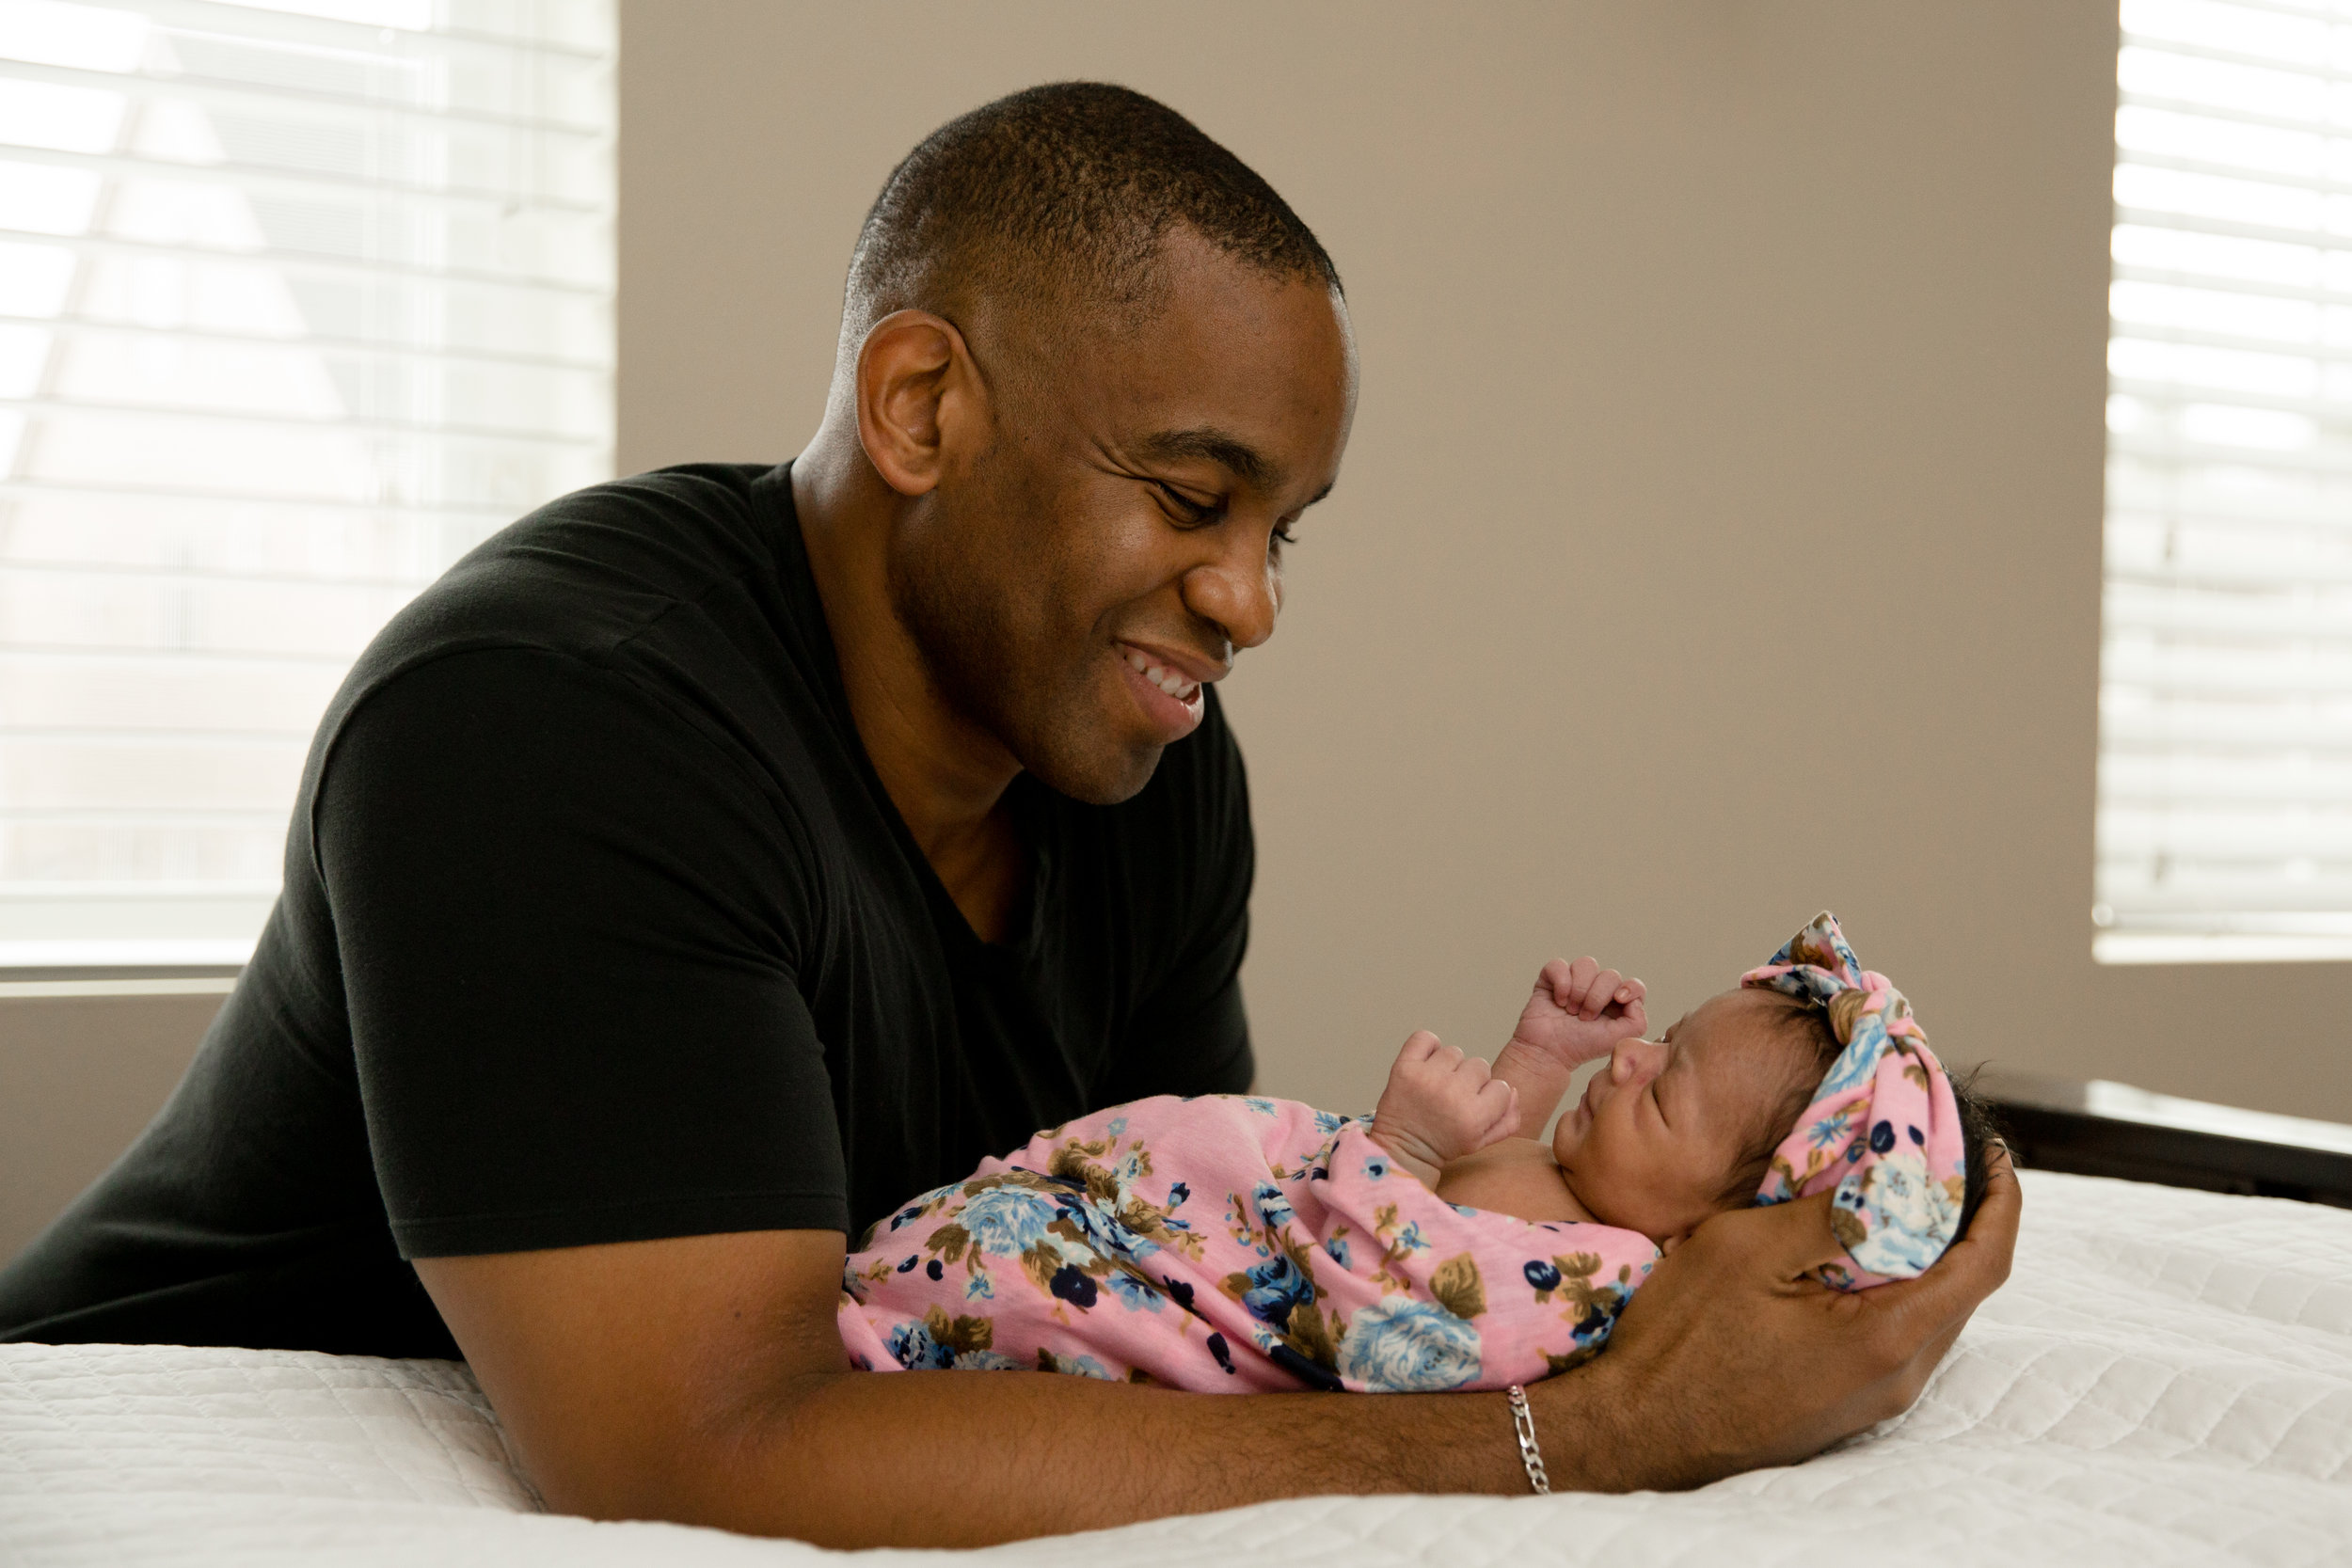 Beautiful baby girl being held by her dad